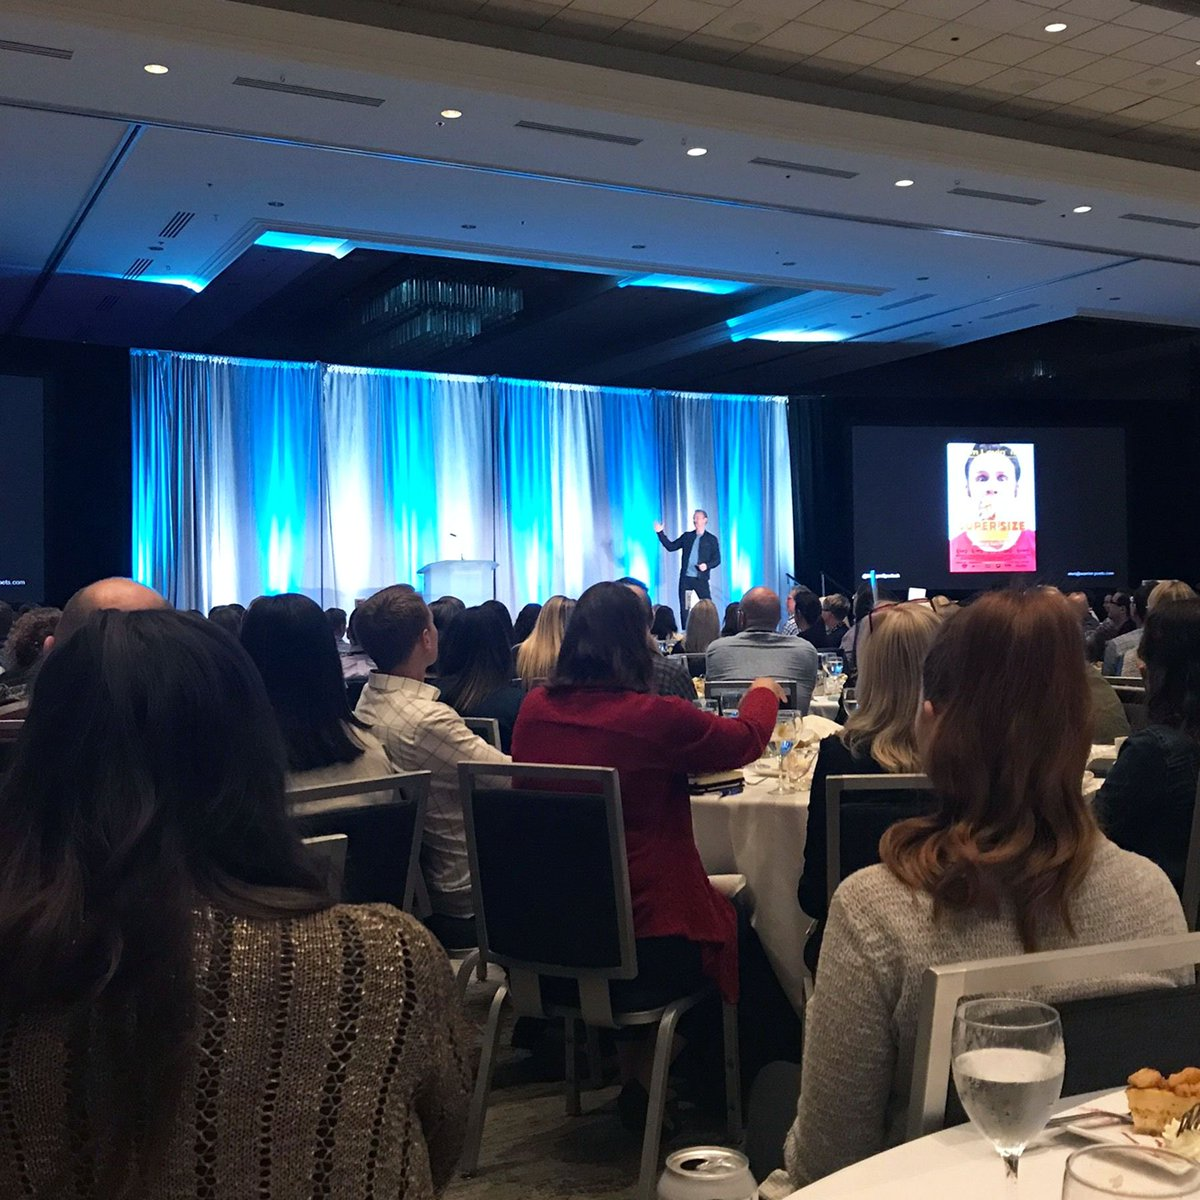 """""""Now is the best time in history to become a storyteller."""" - @MorganSpurlock We agree! #MIMA #MIMASummit @mimatweet https://t.co/p7R3DB6nn8"""